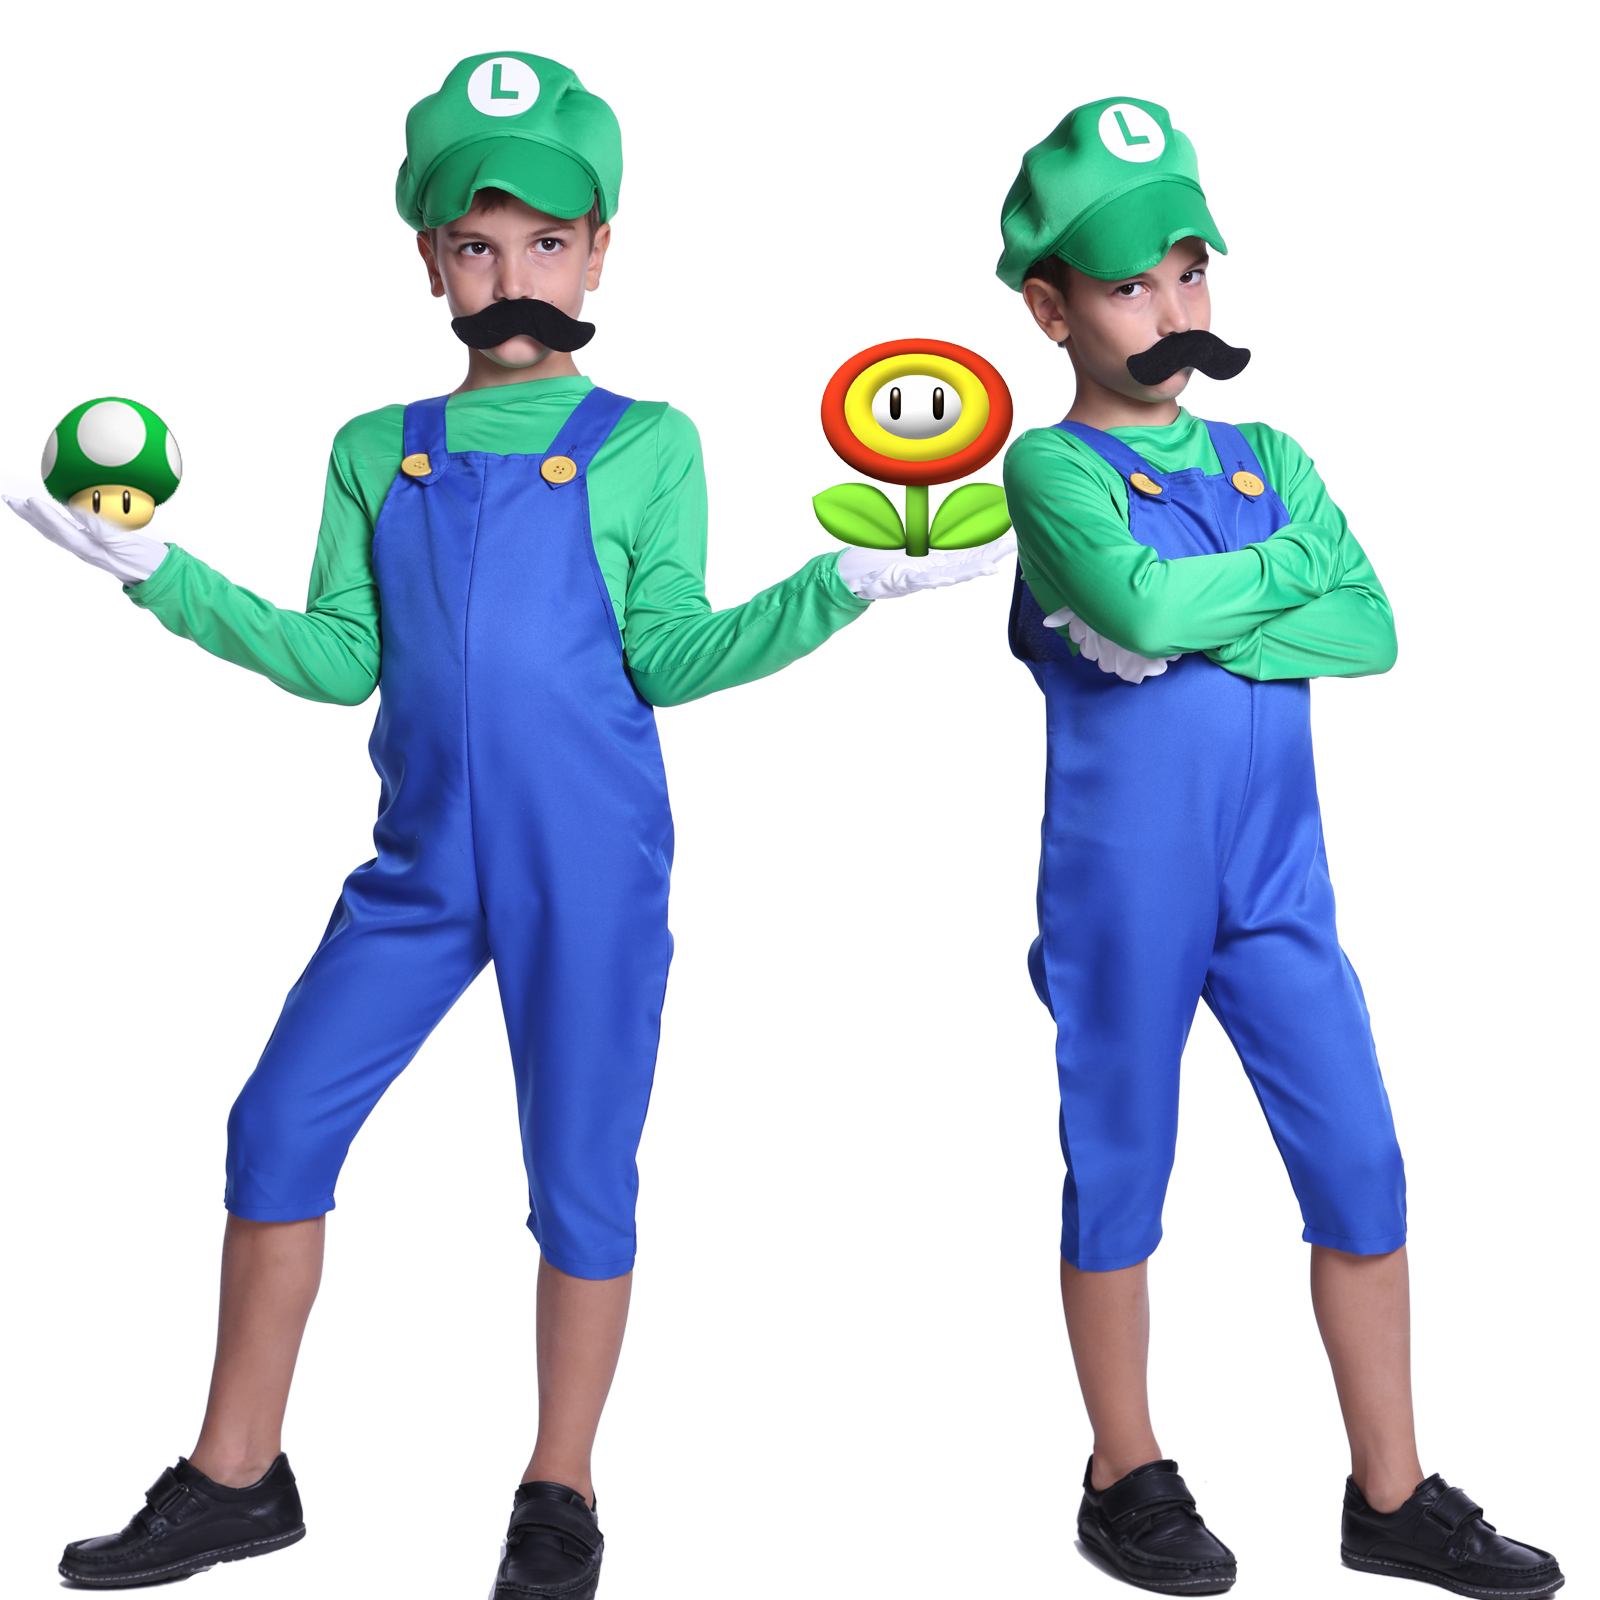 New-Kids-Super-Mario-Costume-Teen-Boys-Clothes-  sc 1 st  eBay & New Kids Super Mario Costume Teen Boys Clothes Fancy Dress Party ...